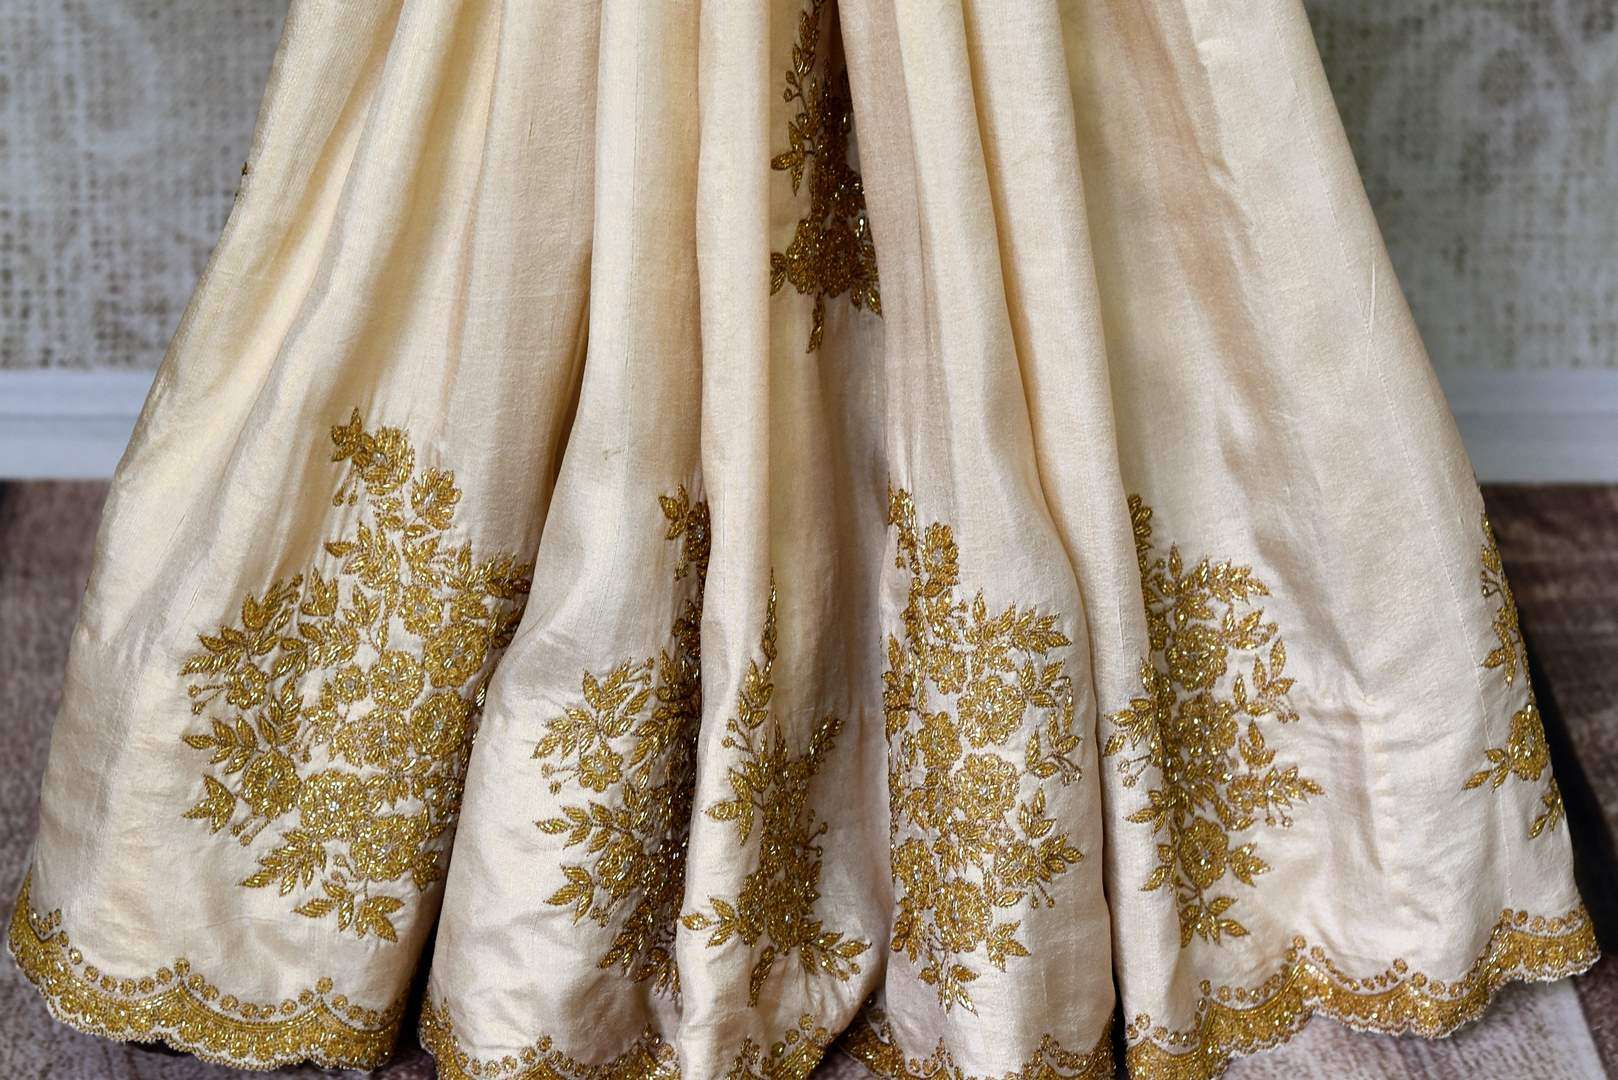 Buy off white embroidered crepe silk saree with sari blouse online in USA. Shop exclusive Indian designer saris, handloom sarees, Banarasi saris, wedding sarees in USA at Pure Elegance clothing store. Explore a range of traditional Indian women clothing also available at our online store. Shop now.-pleats